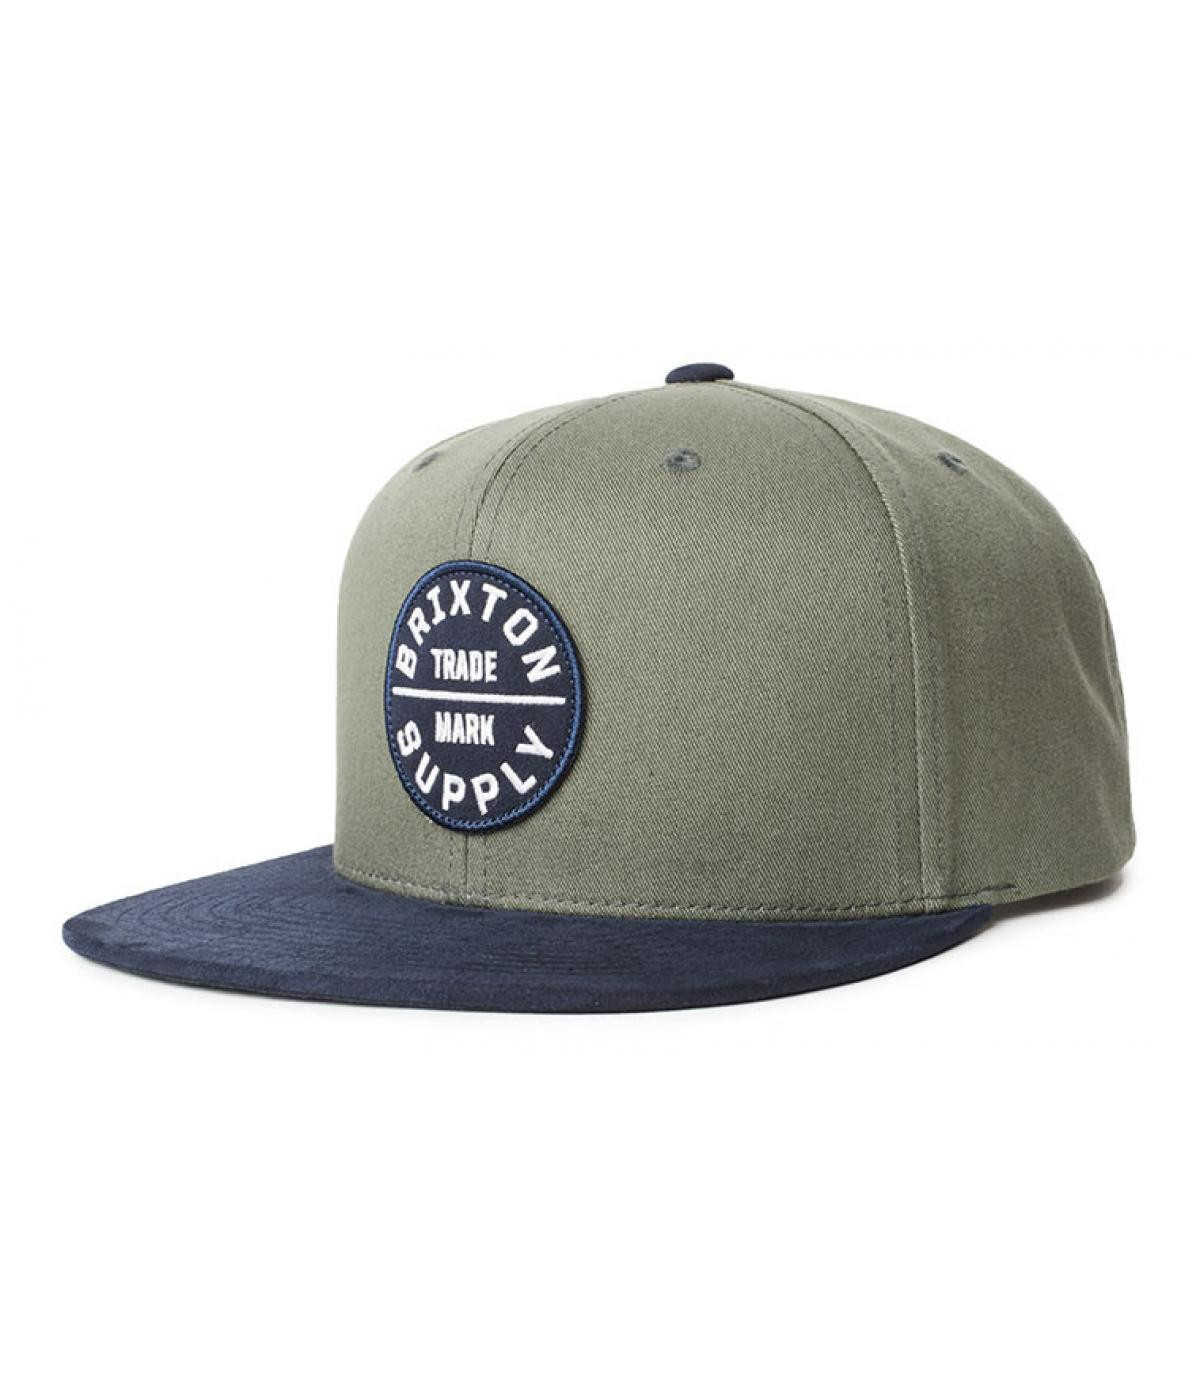 Détails Oath III Snapback cypress washed navy - image 2